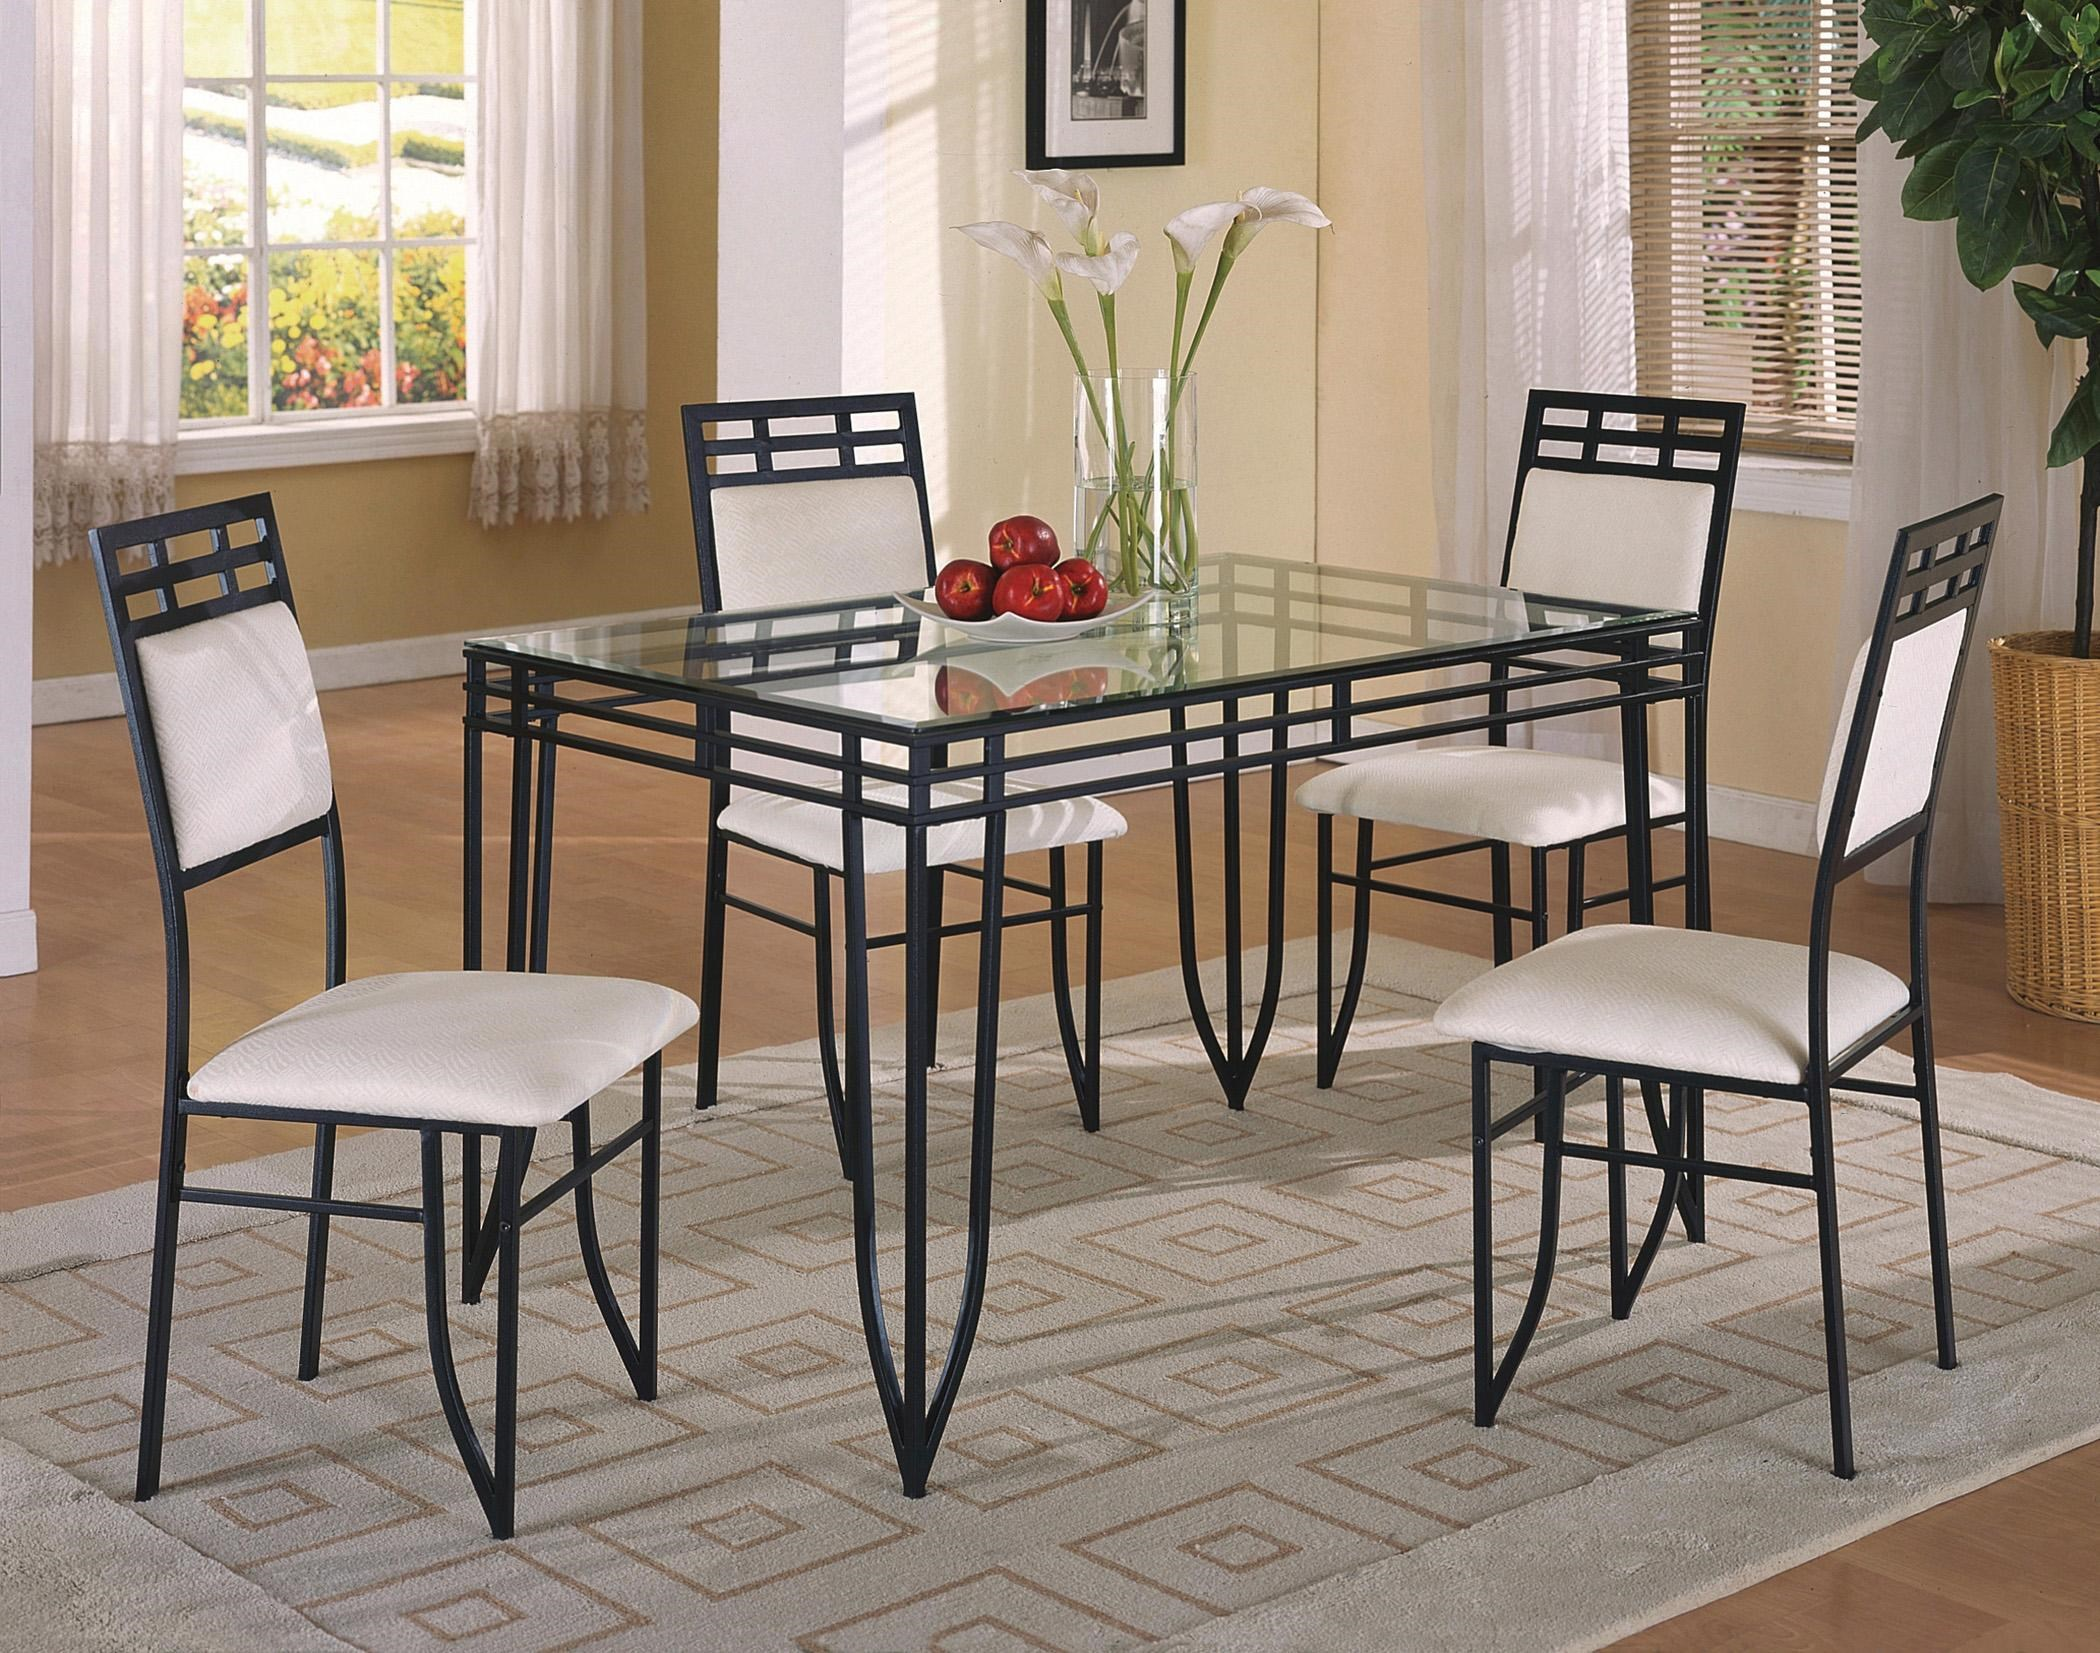 breakfast table and chairs set folding chair rental crown mark matrix 5 piece dinette side dunk bright furniture dining sets